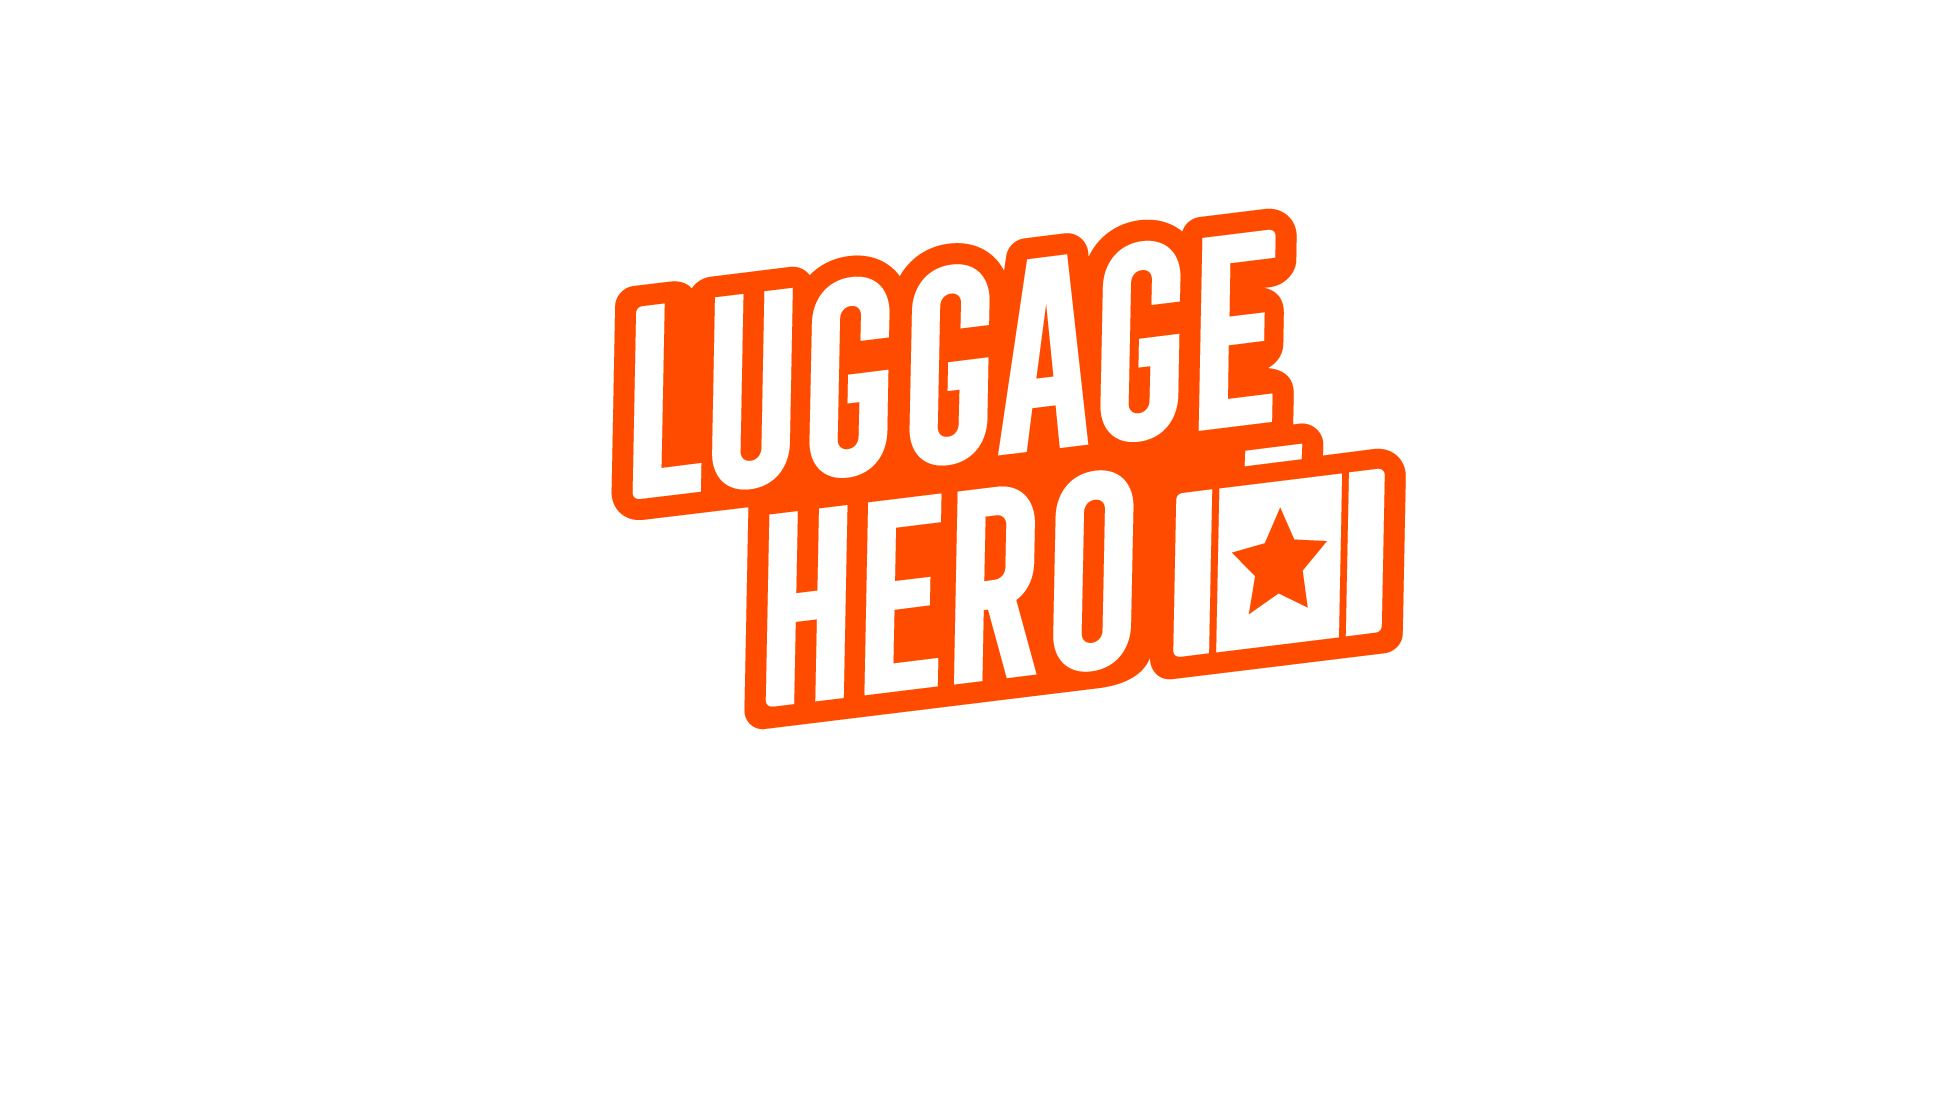 - LuggageHero allows short-term rental guests to safely store their luggage inside selected local businesses, saving hosts from having to take their luggage with them after they have checked out, and driving spending in local economies.